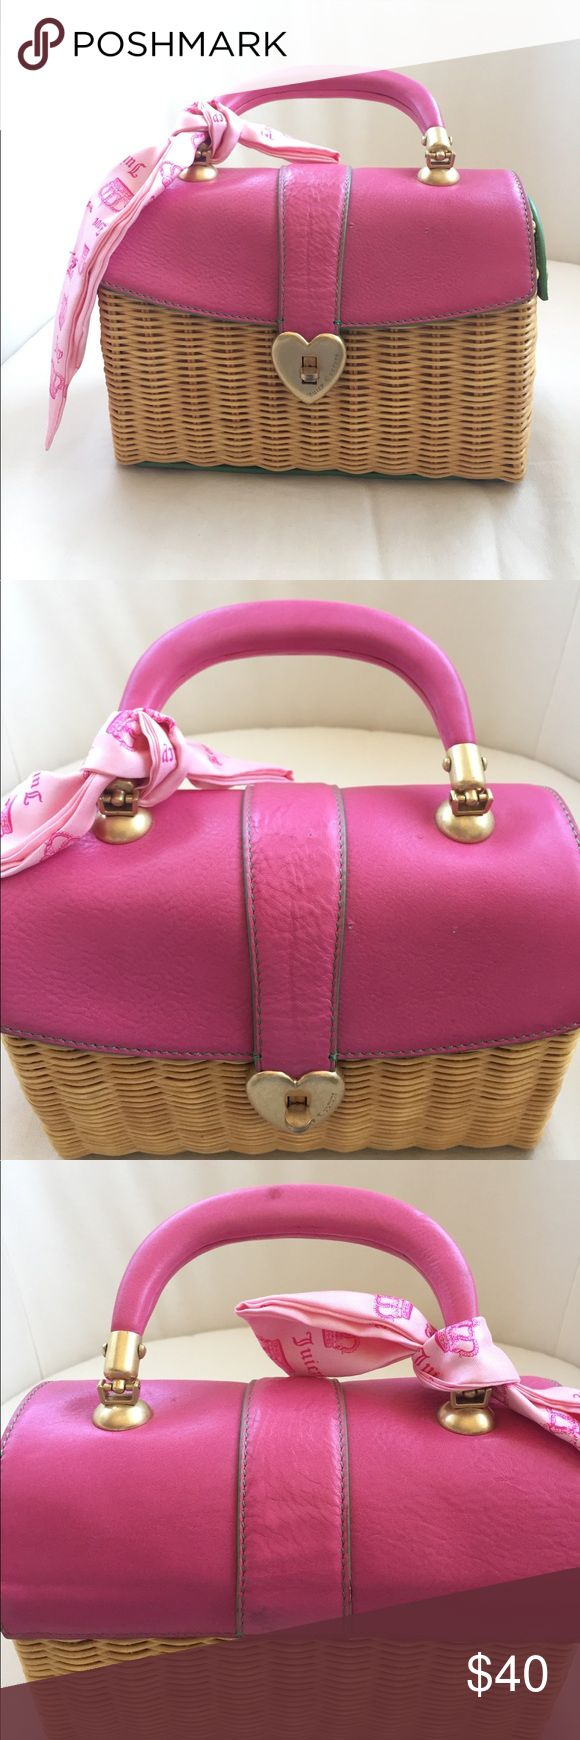 Spotted while shopping on Poshmark: Juicy Couture wicker bag! #poshmark #fashion #shopping #style #Juicy Couture #Handbags